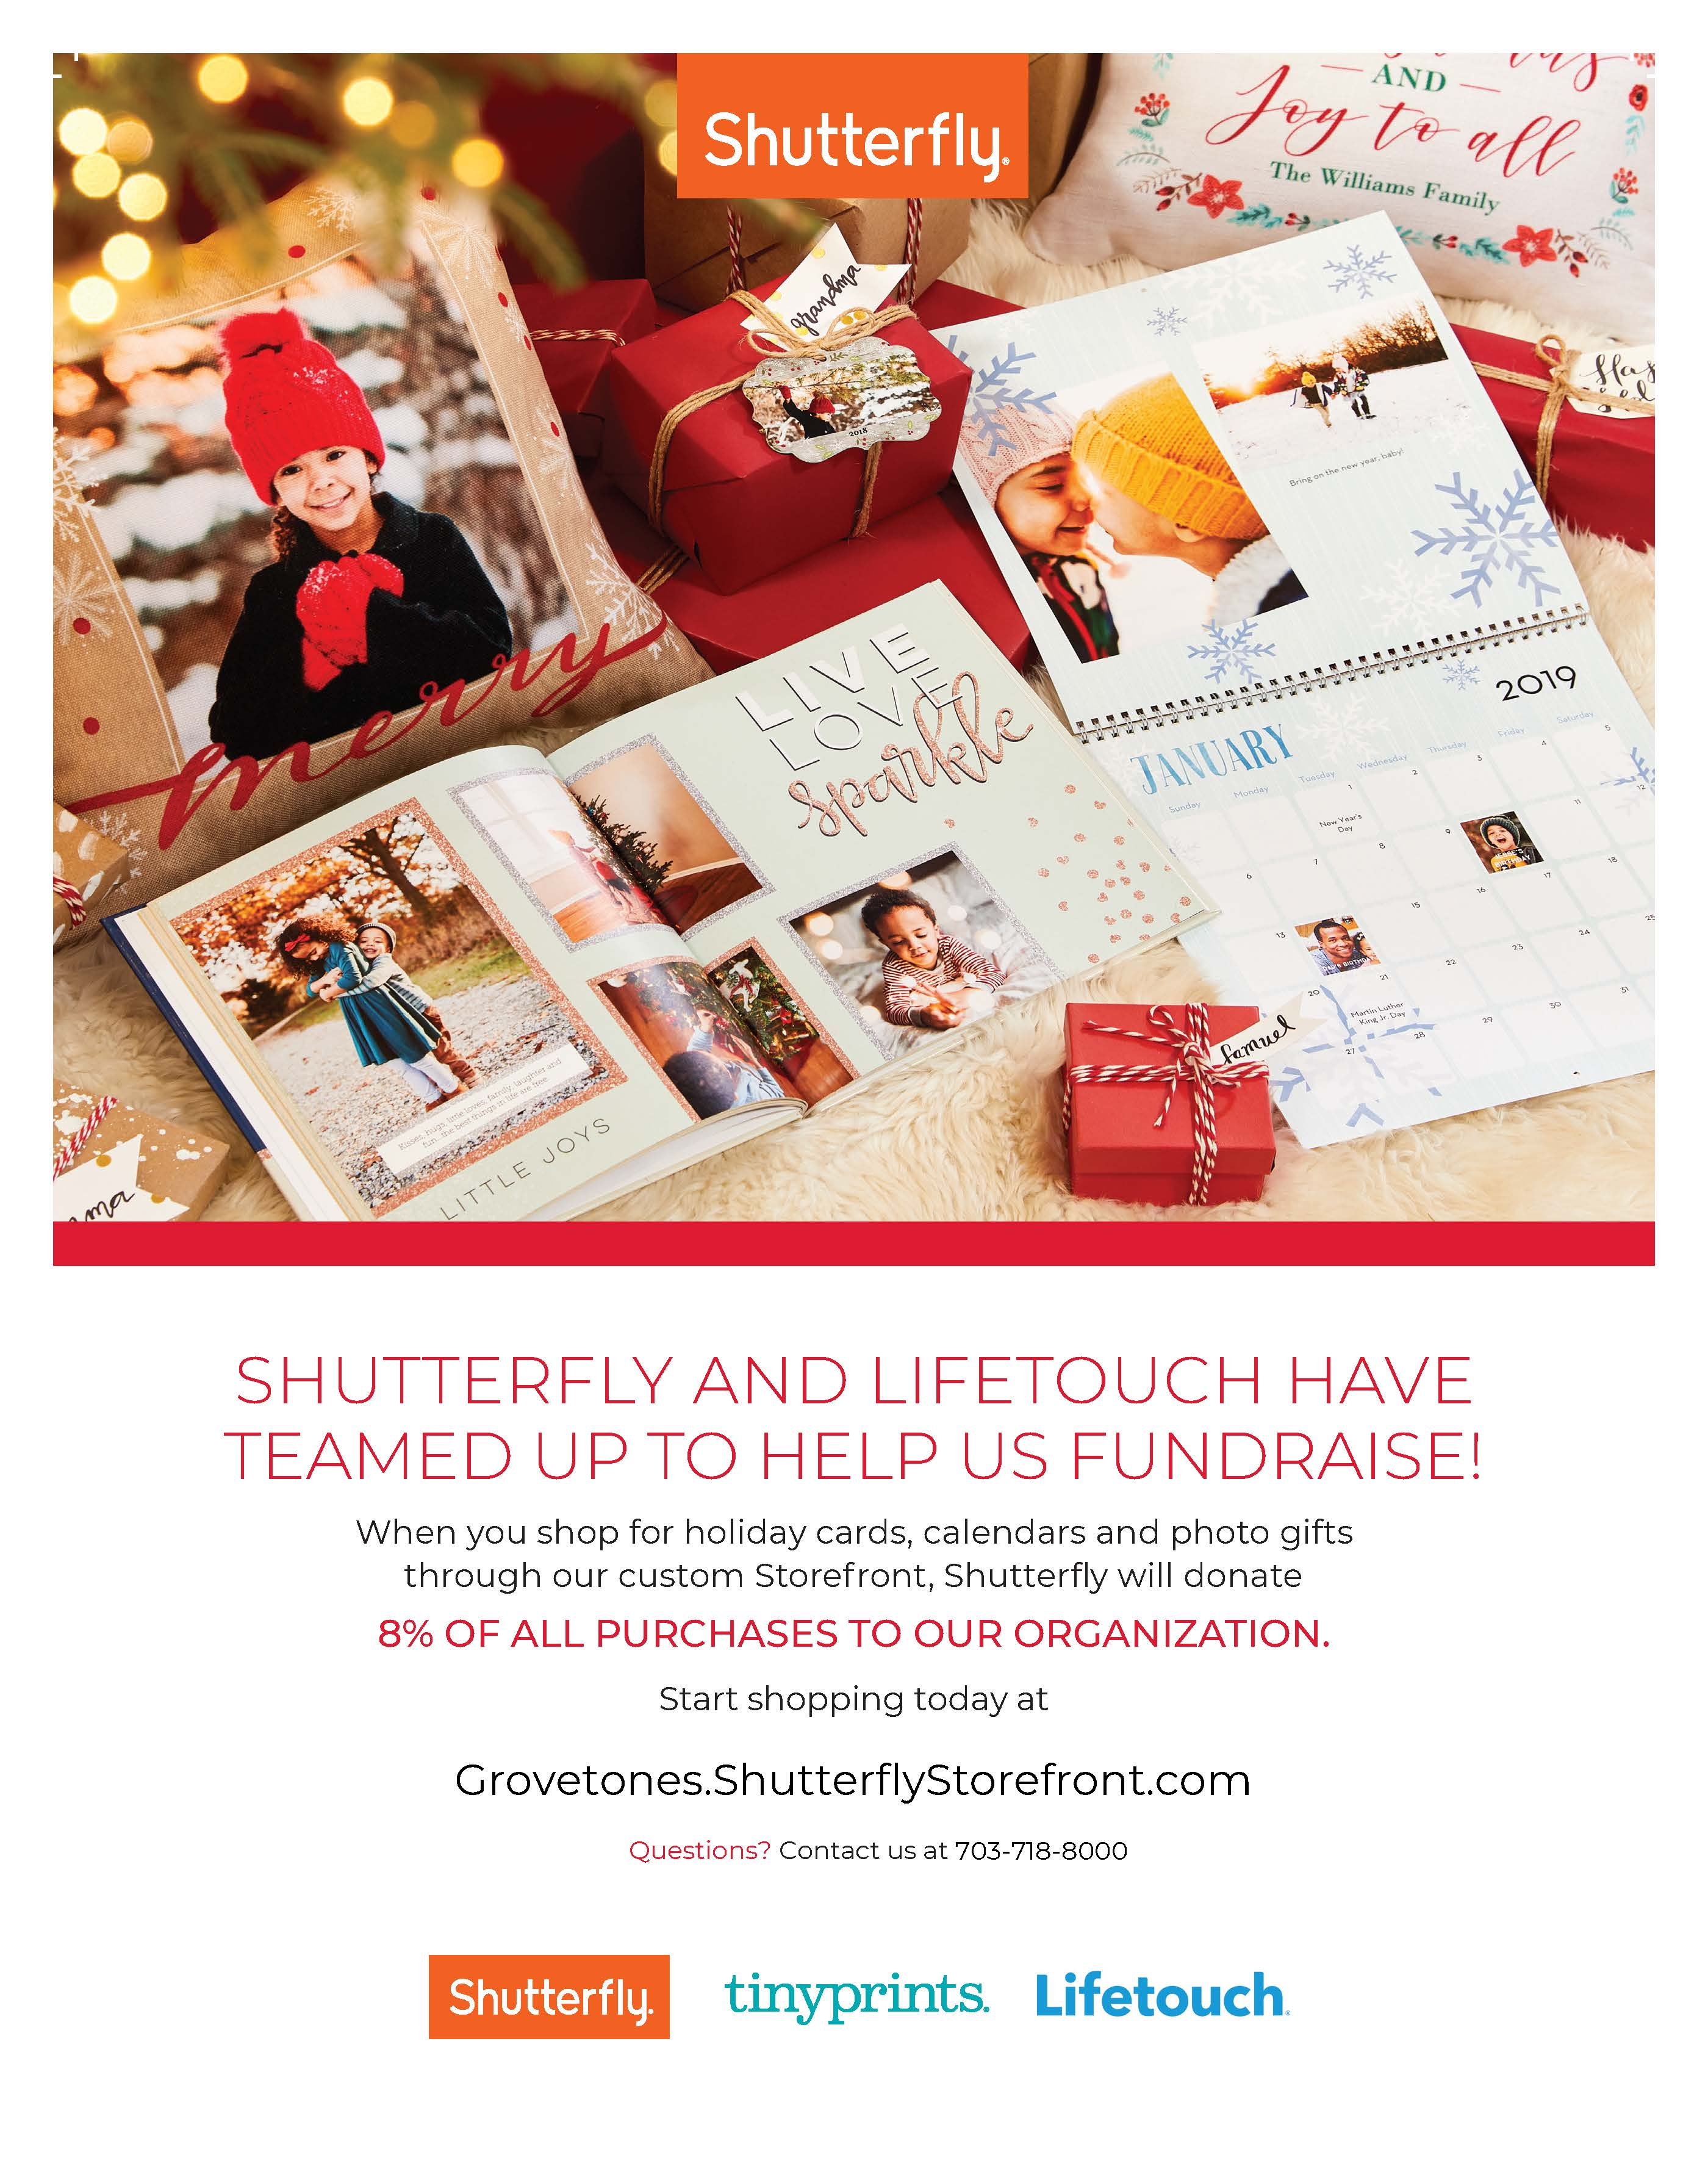 photo of Shutterfly and Lifetouch flier